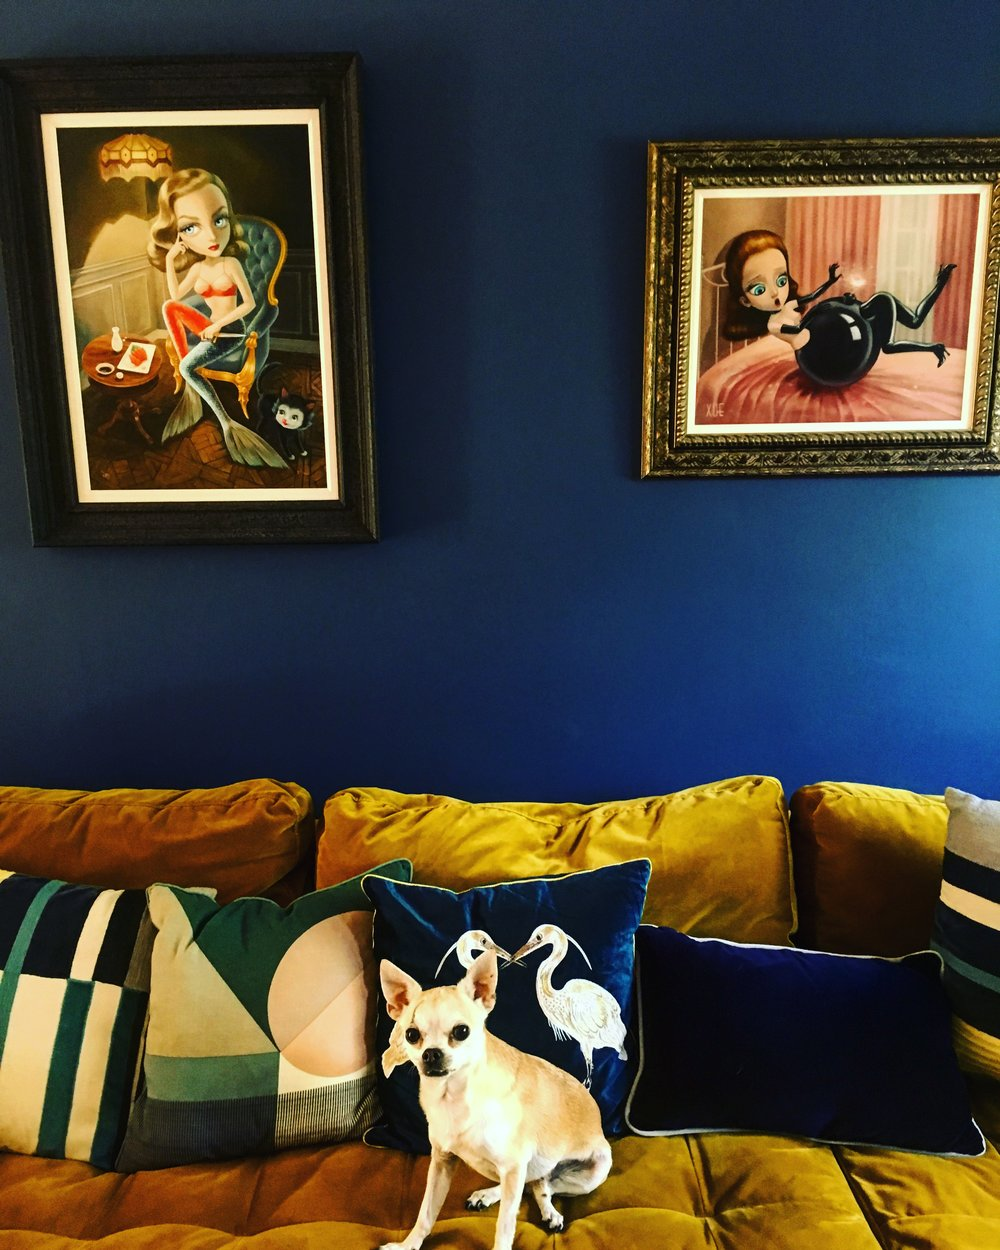 Feature wall - Farrow and Ball Stiffkey Blue Art - Castle Gallery; Artist Xue Wang Sofa - Made.com  Dog - Woody - Owners own Cushions - Made.com